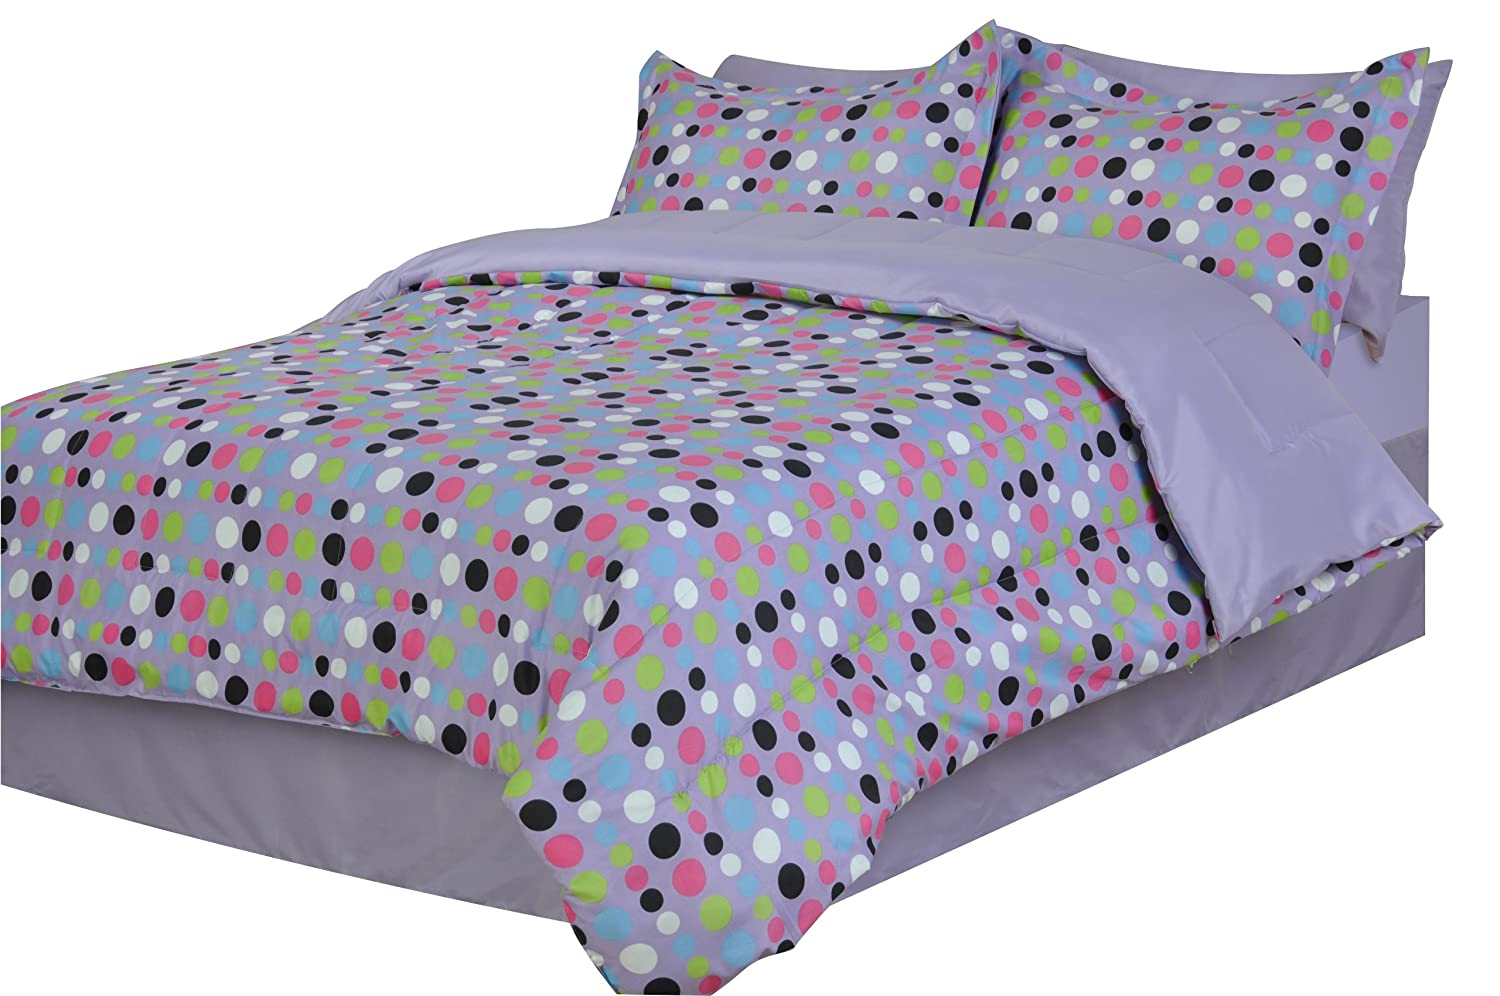 Divatex Dots Microfiber Twin X-Large Bed In the Bag Divatex Home Fashions 332694TXL